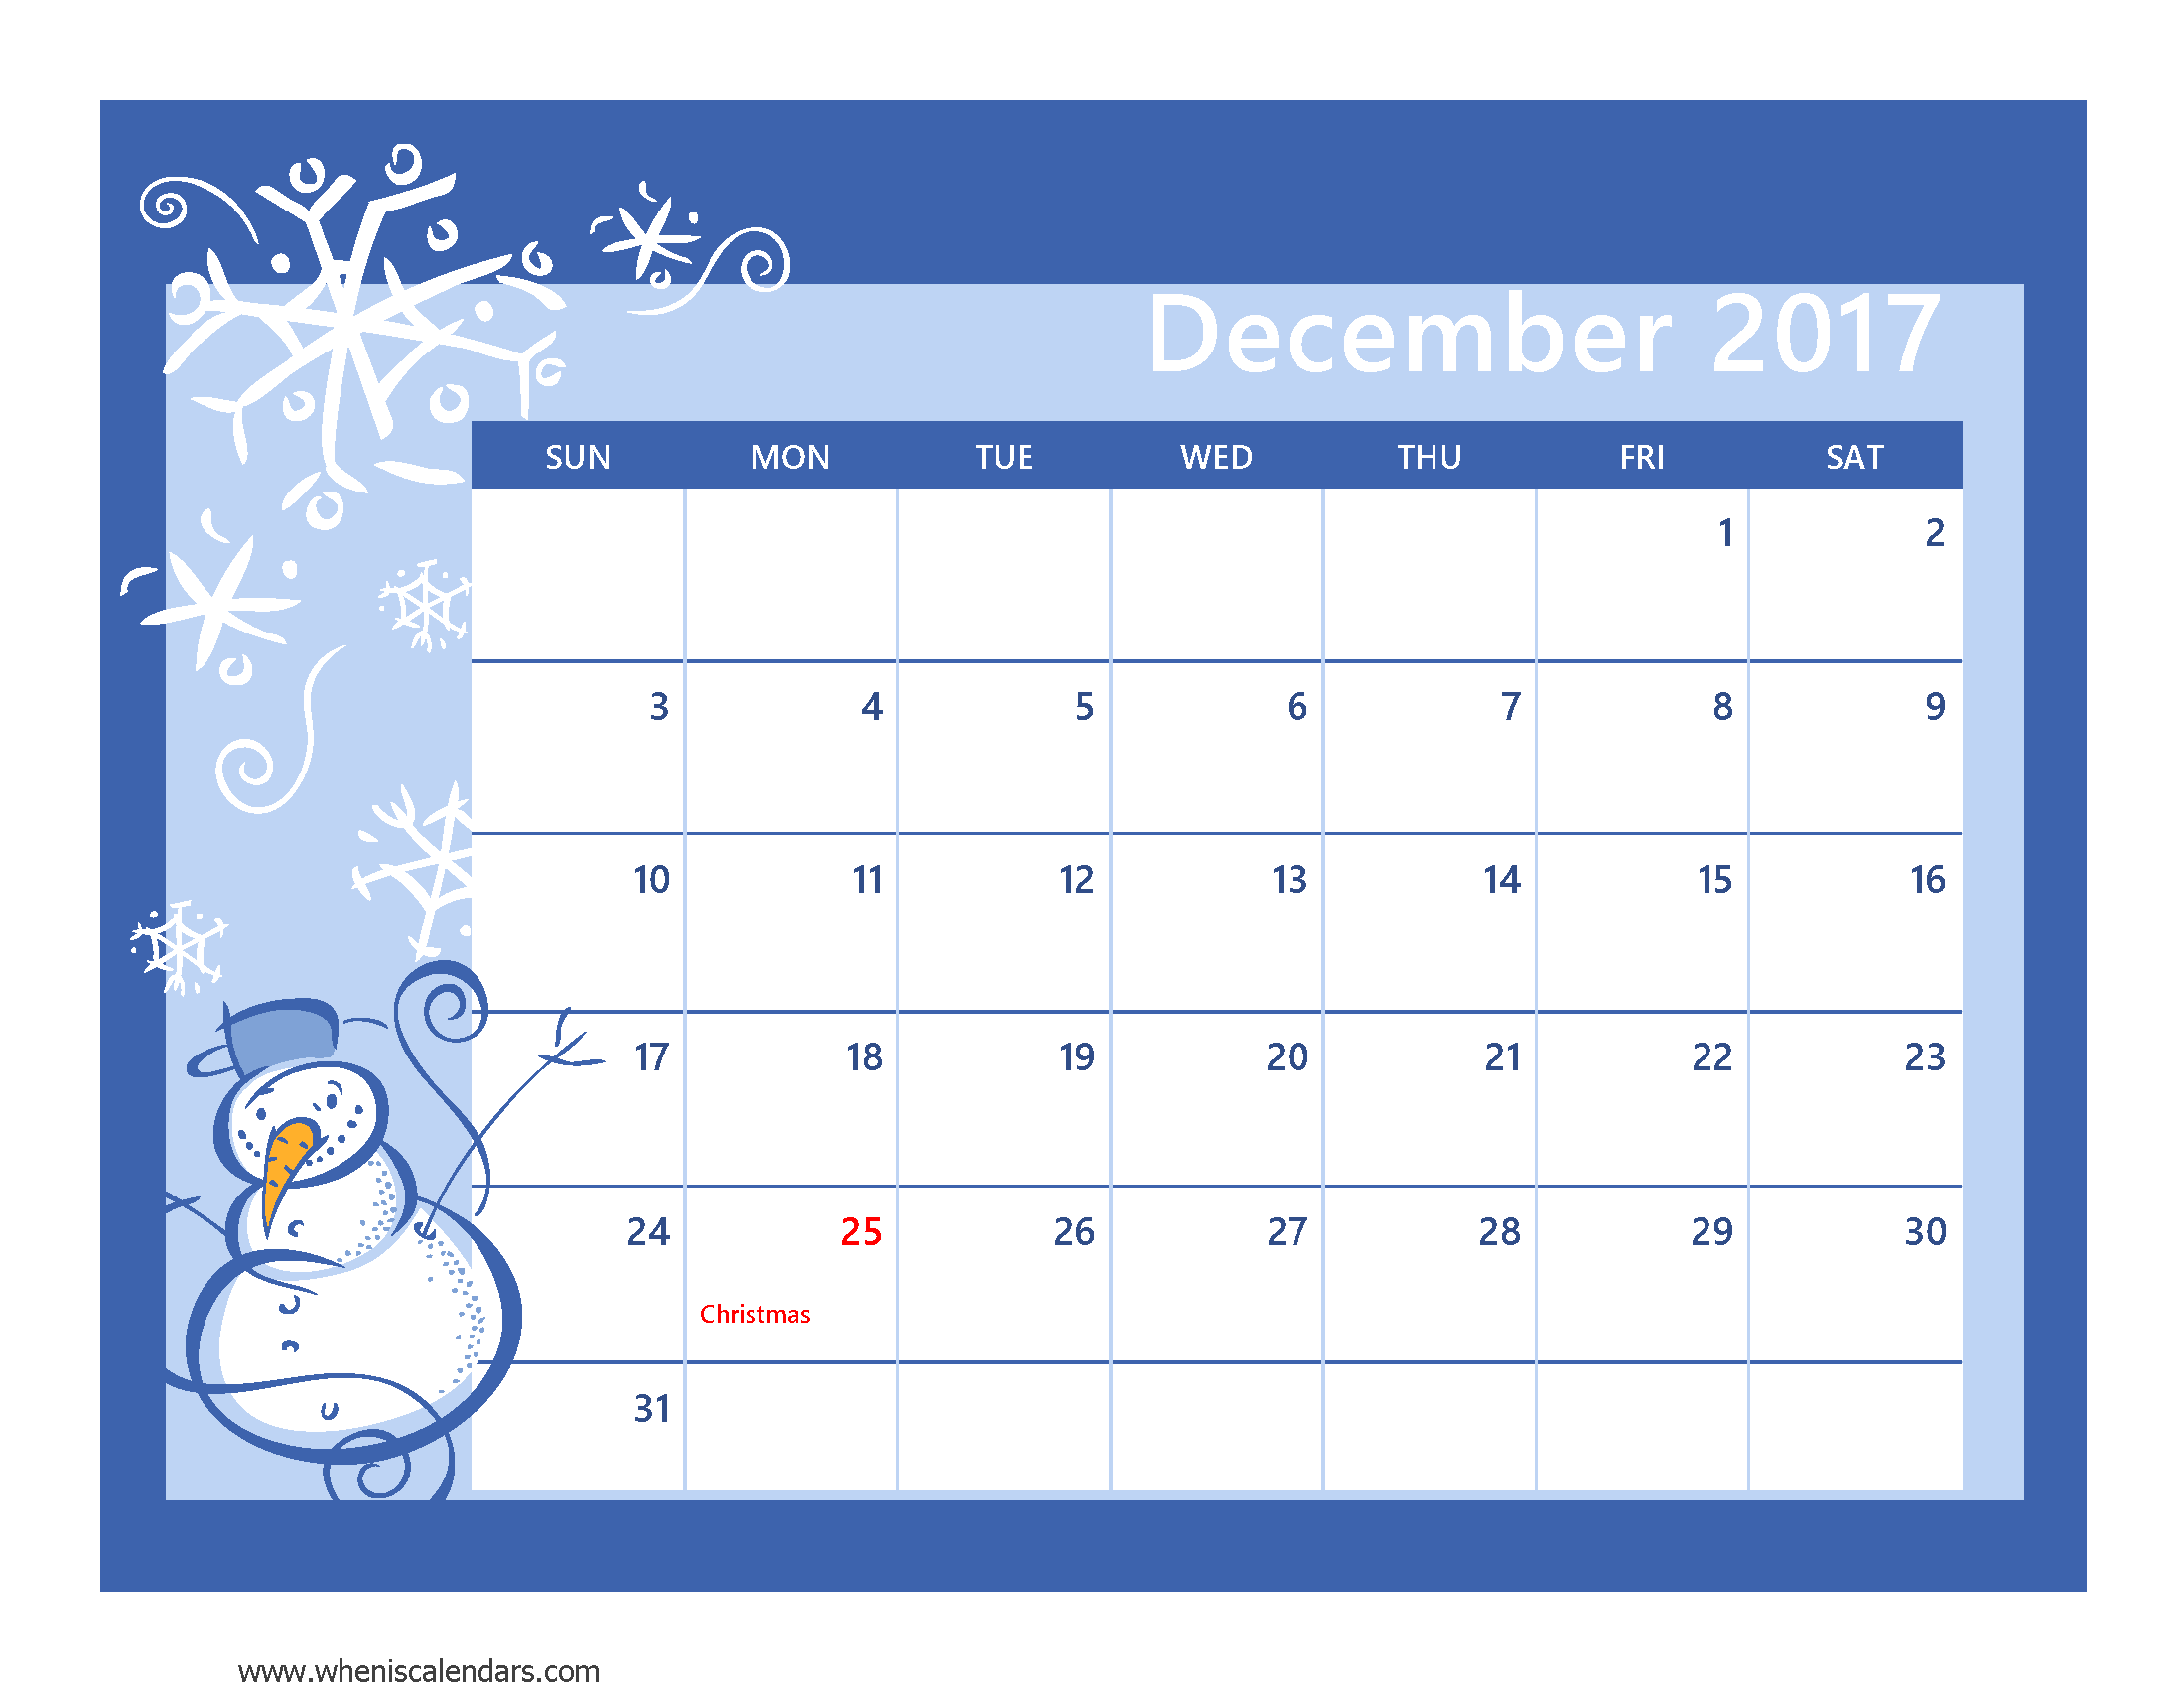 Printable December When Is Calendars